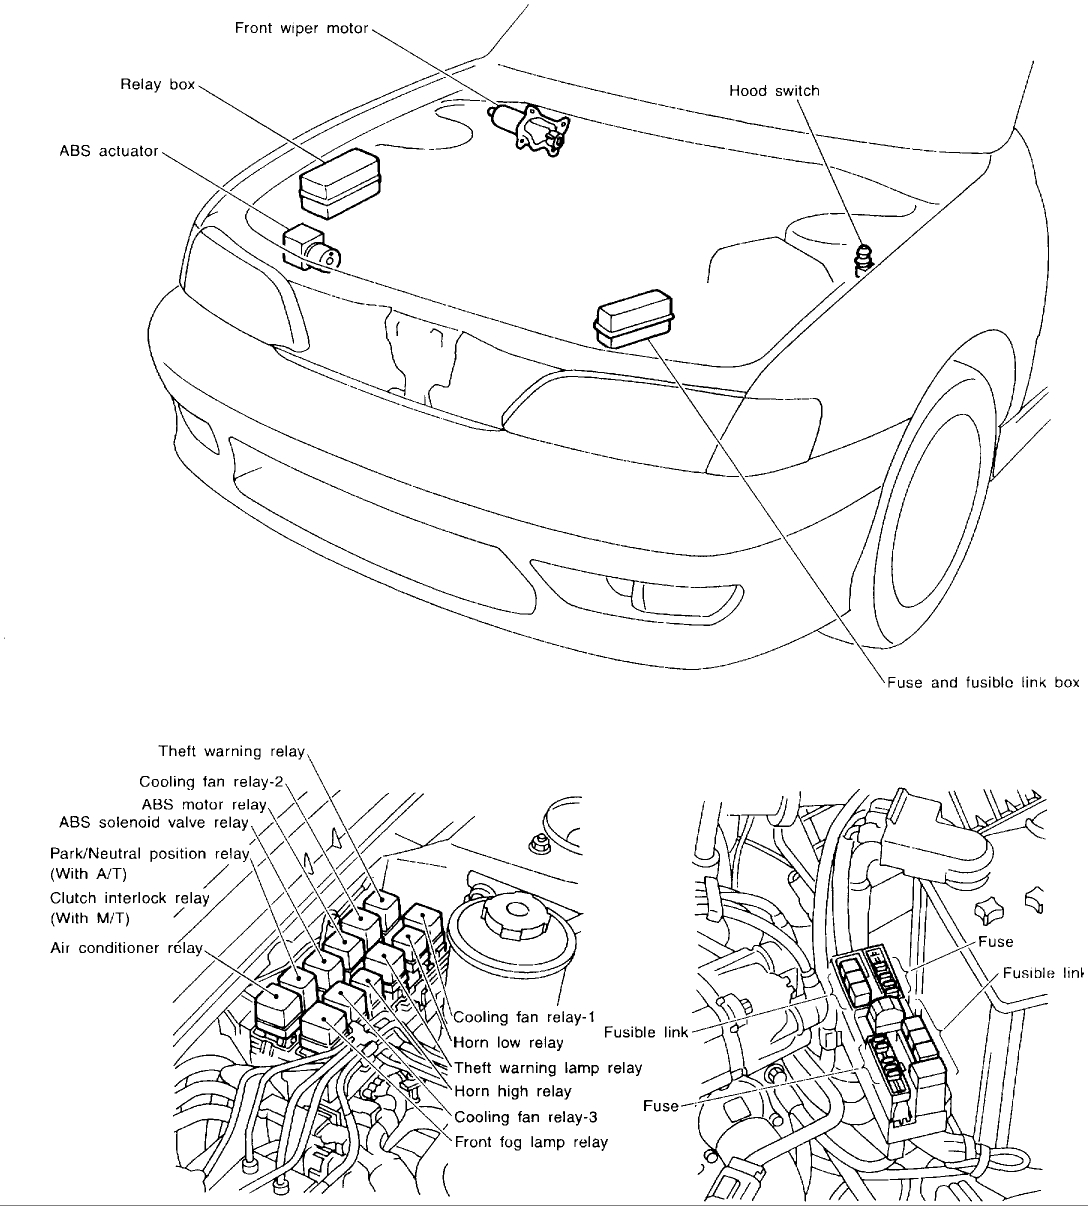 1996 Bmw Z3 Fuse Box Diagram Trusted Wiring Diagrams \u2022 96 Ford Club  Wagon ABS Pump 1996 Ford Club Wagon Fuse Box